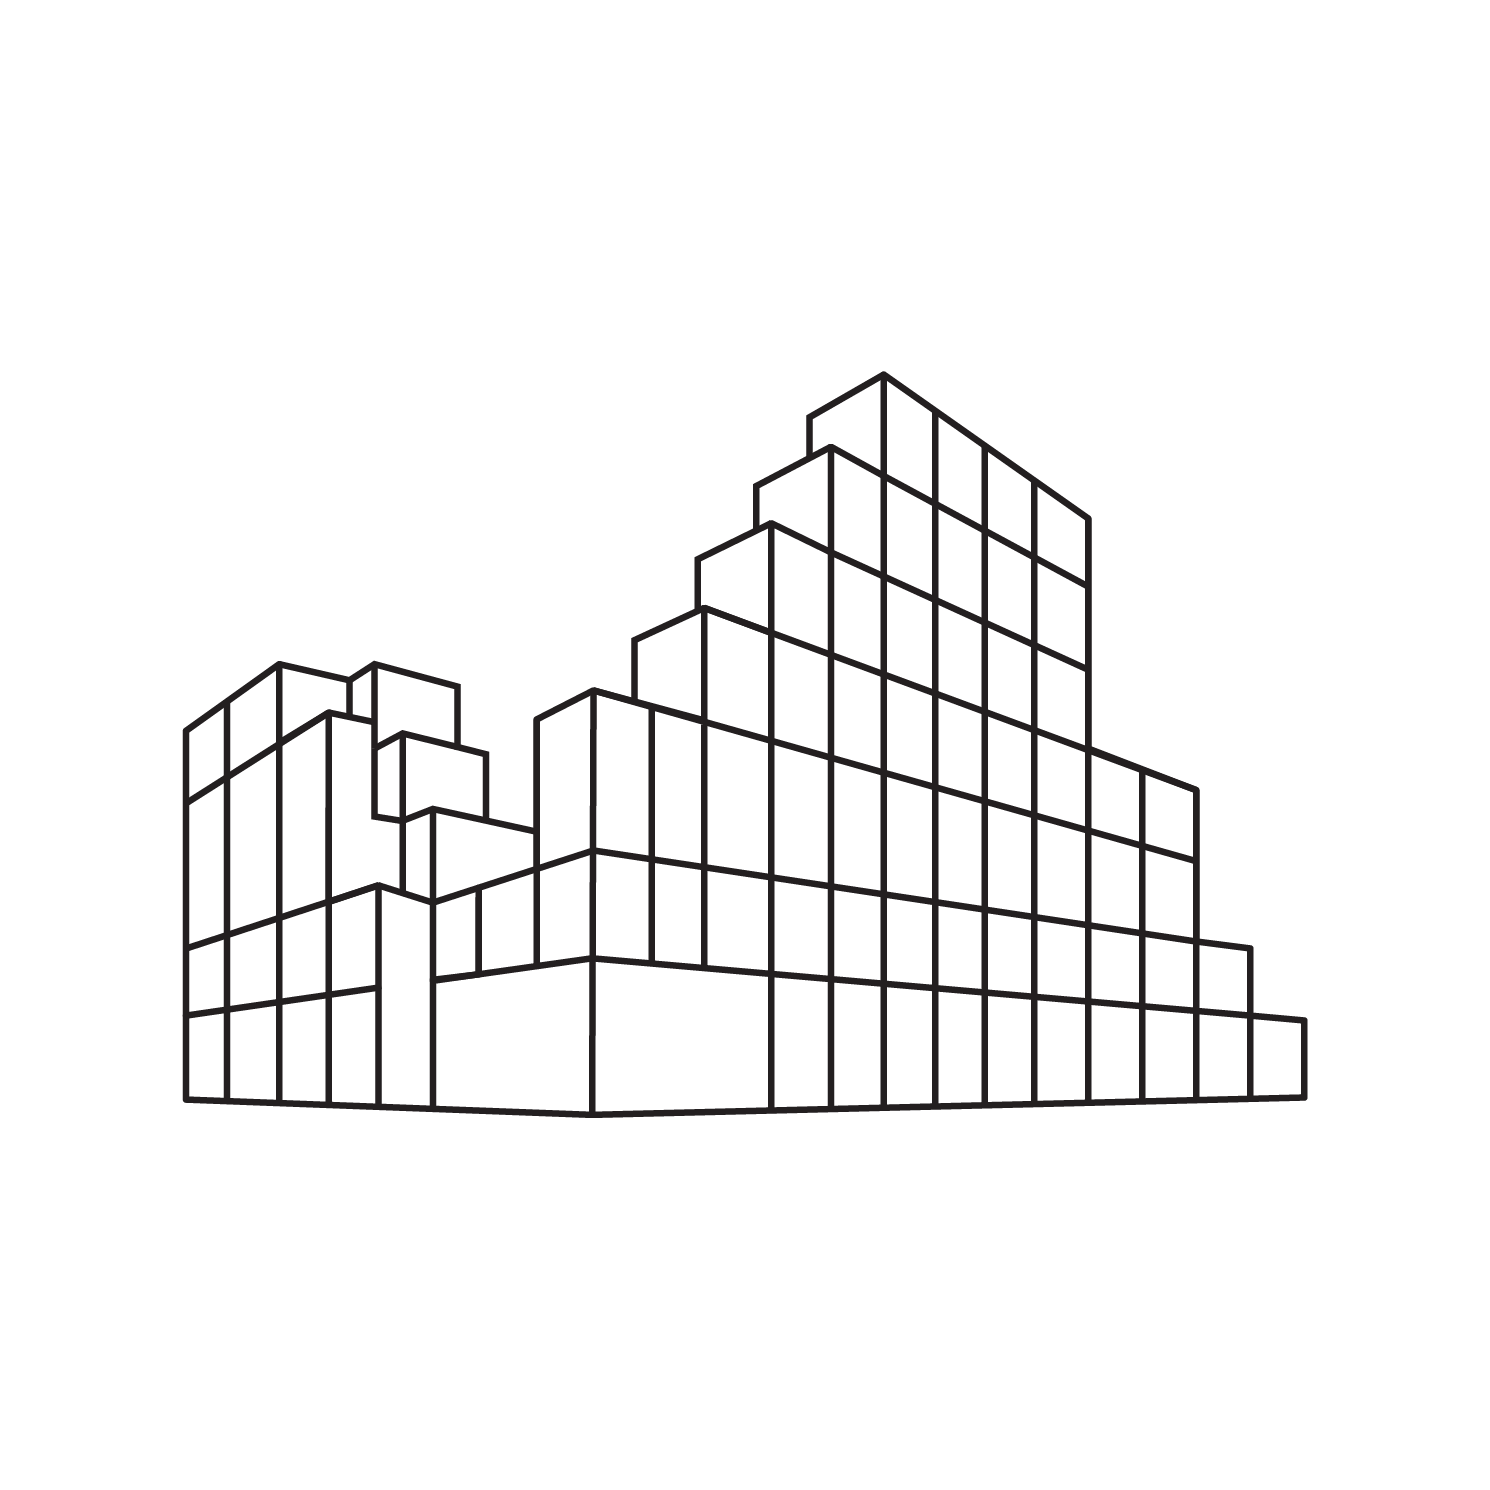 OurDomain Amsterdam South East - White drawing of the building with transparent background